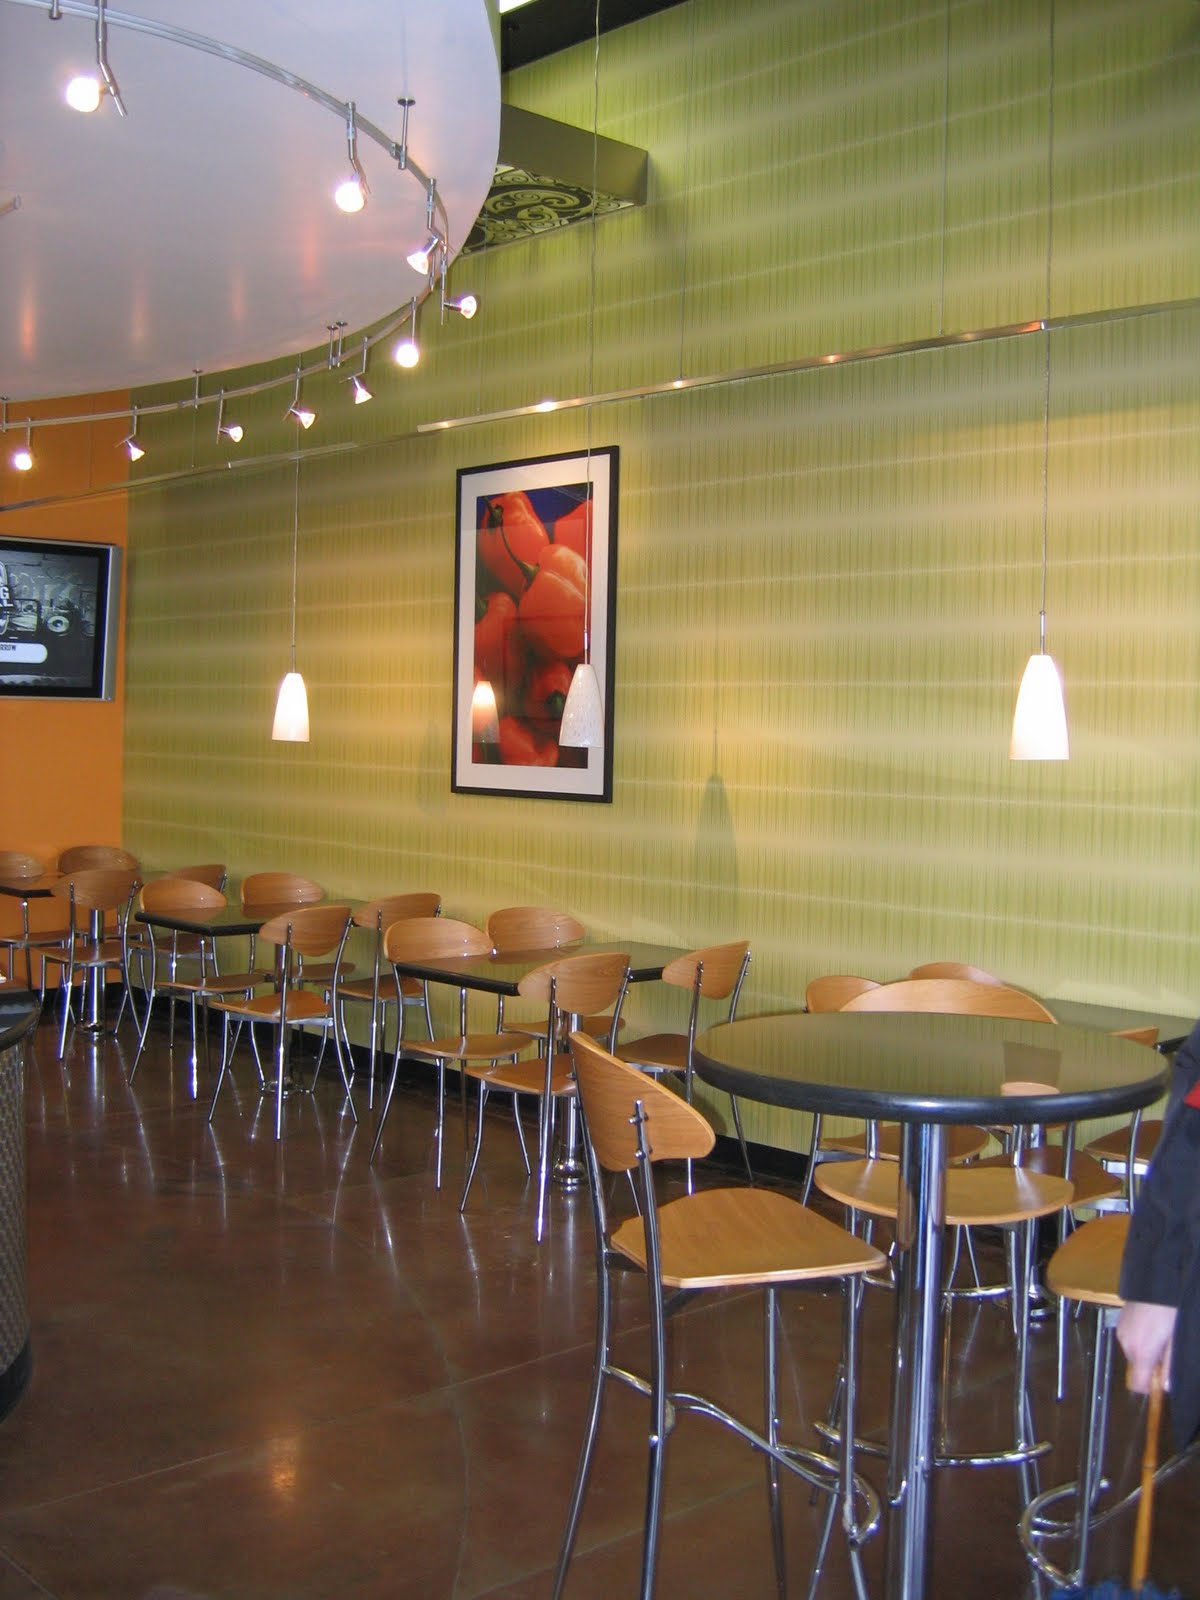 Restaurant interior paint colors quizeteer